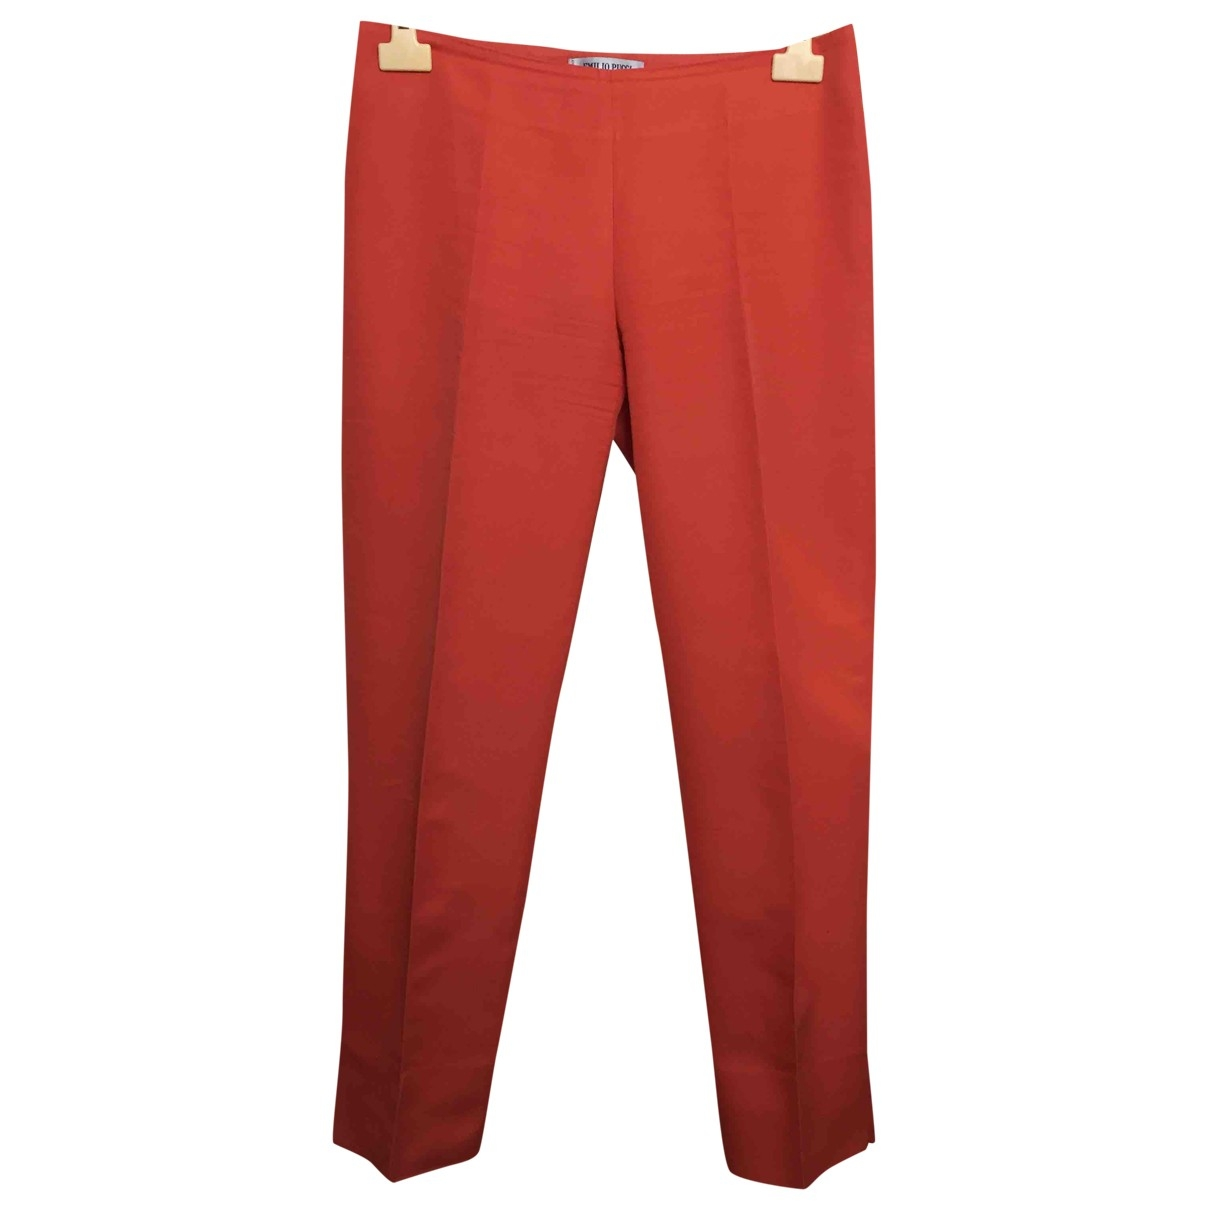 Emilio Pucci \N Red Cotton Trousers for Women 42 IT